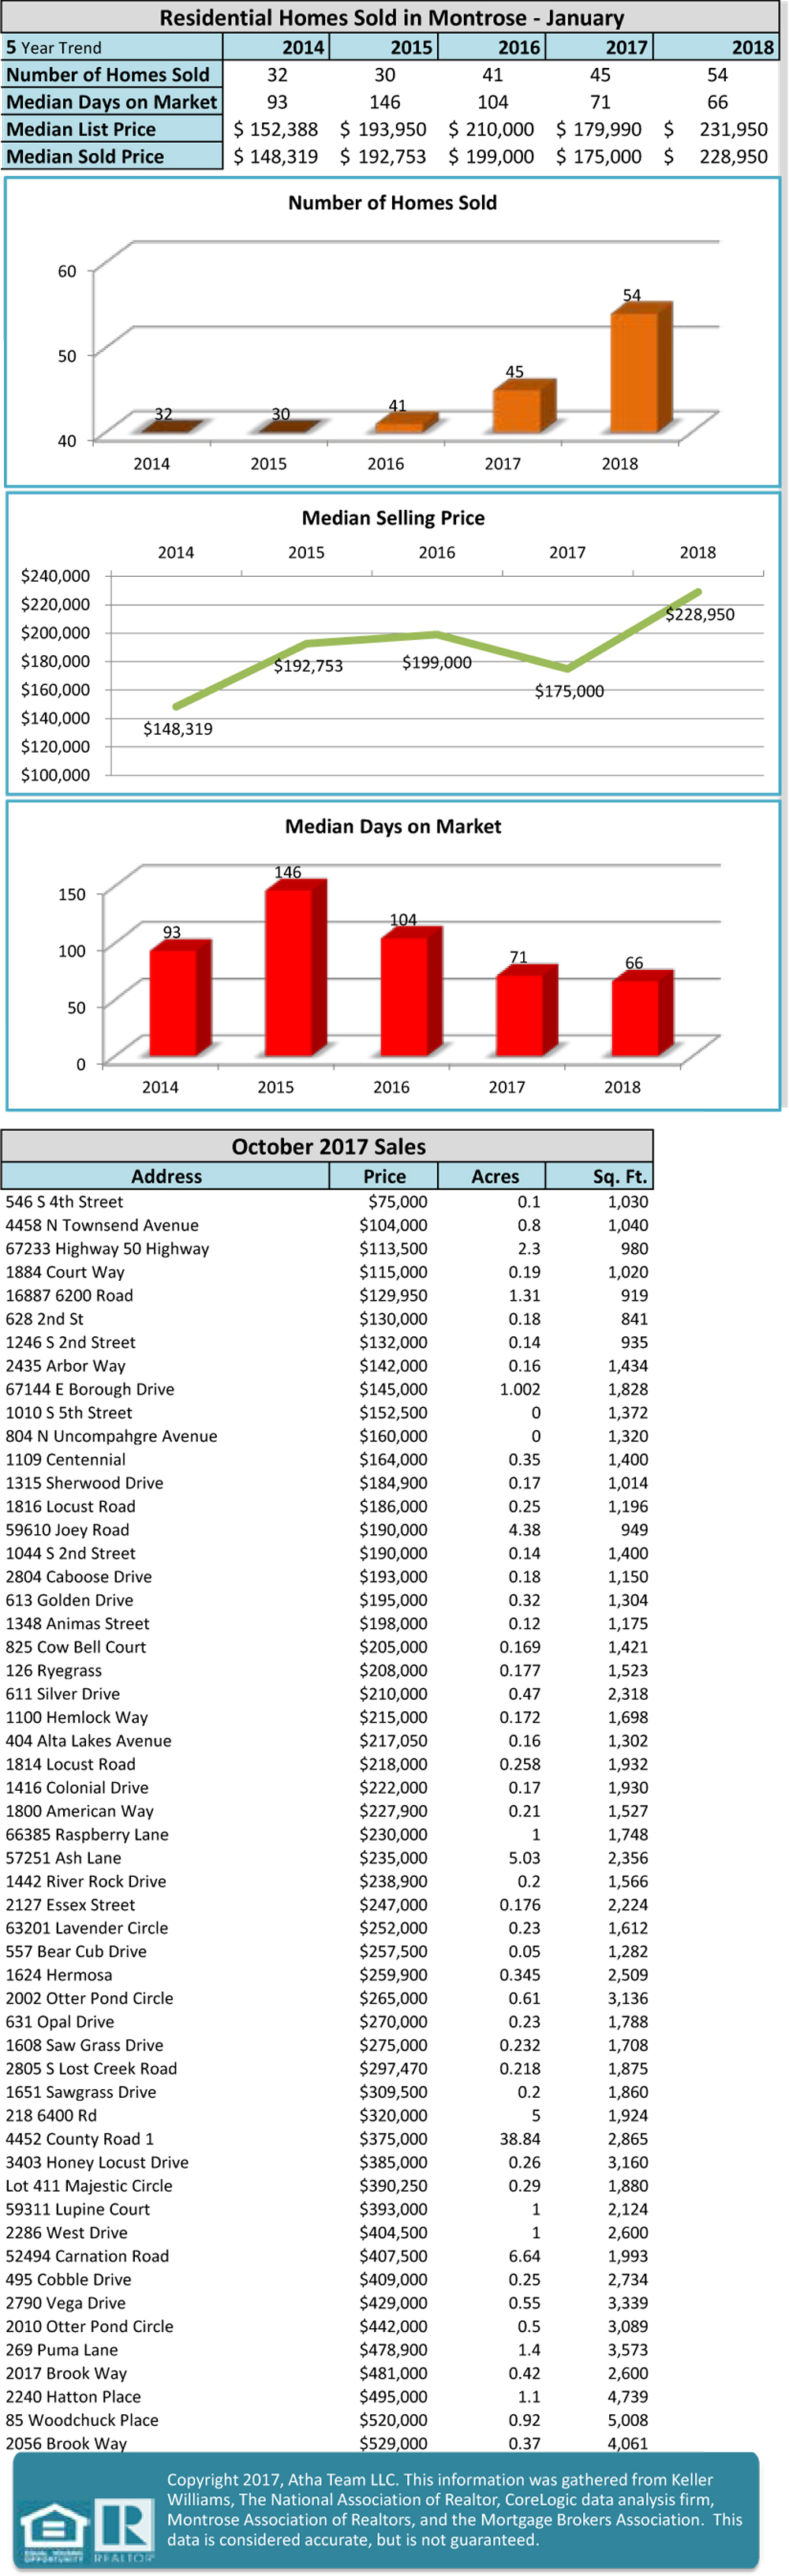 February 2018 local and national market stats update - Atha Team